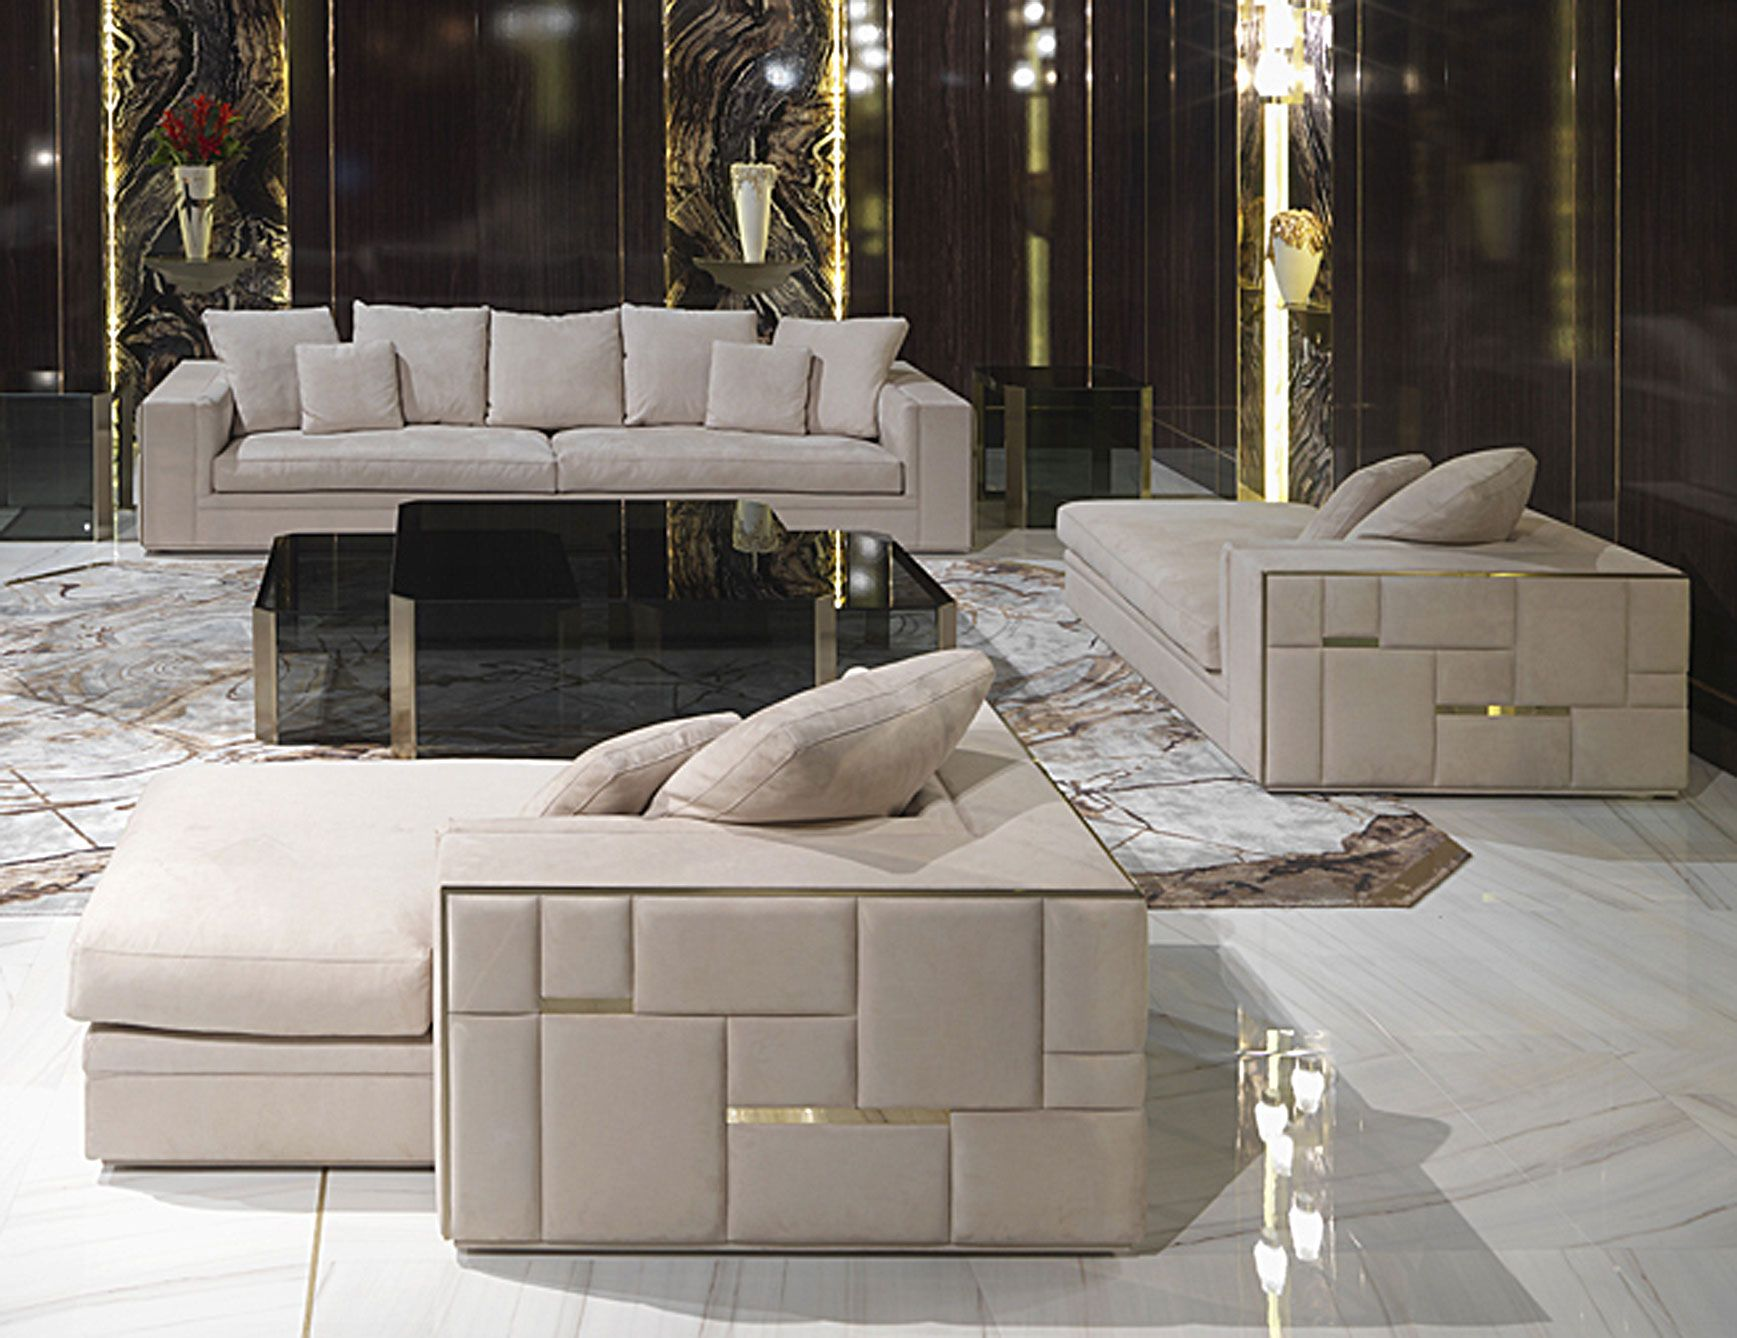 Lounge Occasional Chairs Babylon Living Room Sofa Design Luxury Sofa Design Luxury Living Room